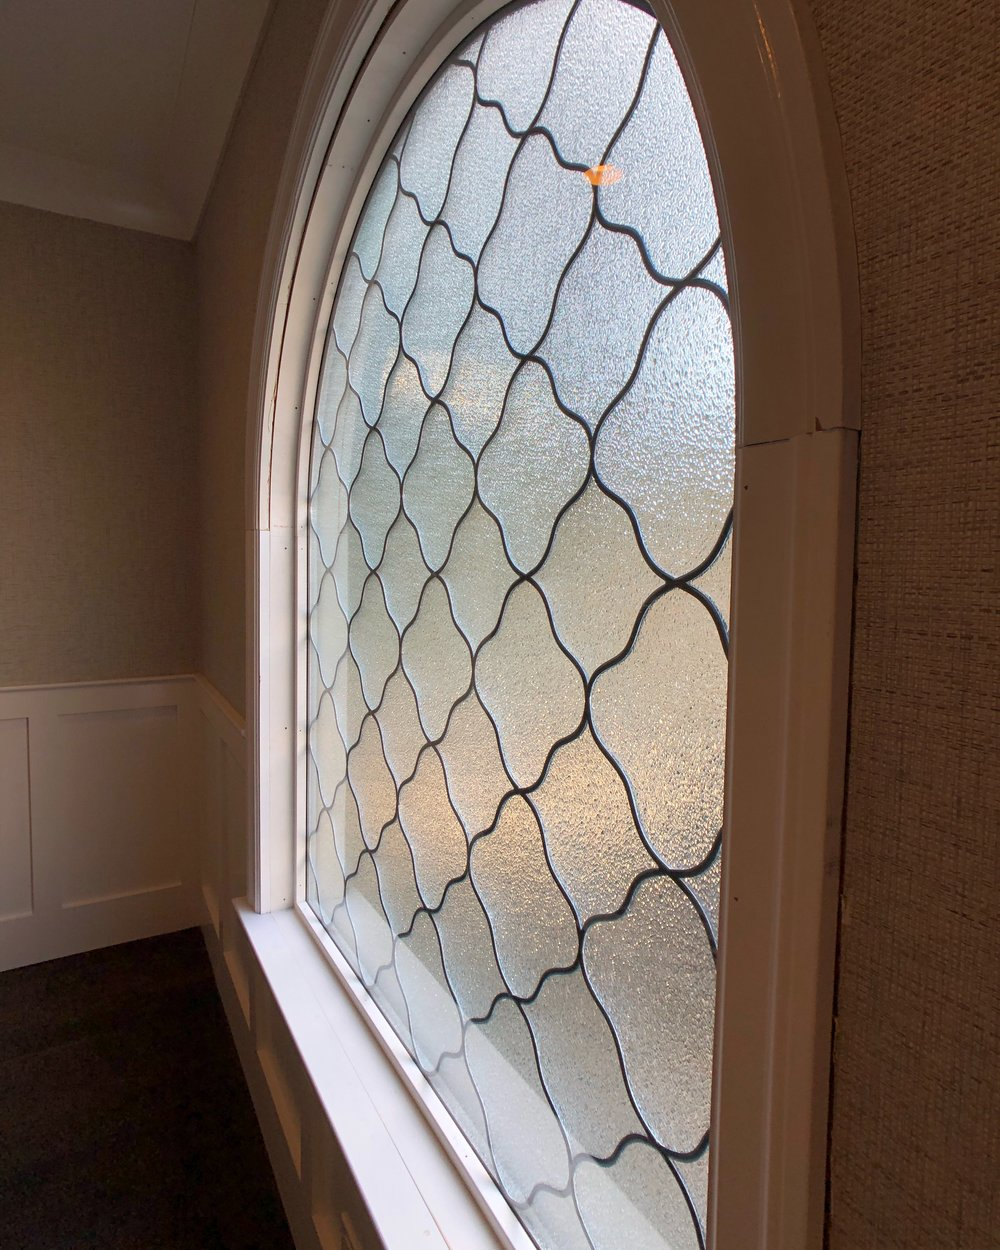 bay area custom design legacy glass studios design triple insulated crystal ice clear texture pattern quatrefoil obscurity privacy window sash glare energy efficiency.jpg